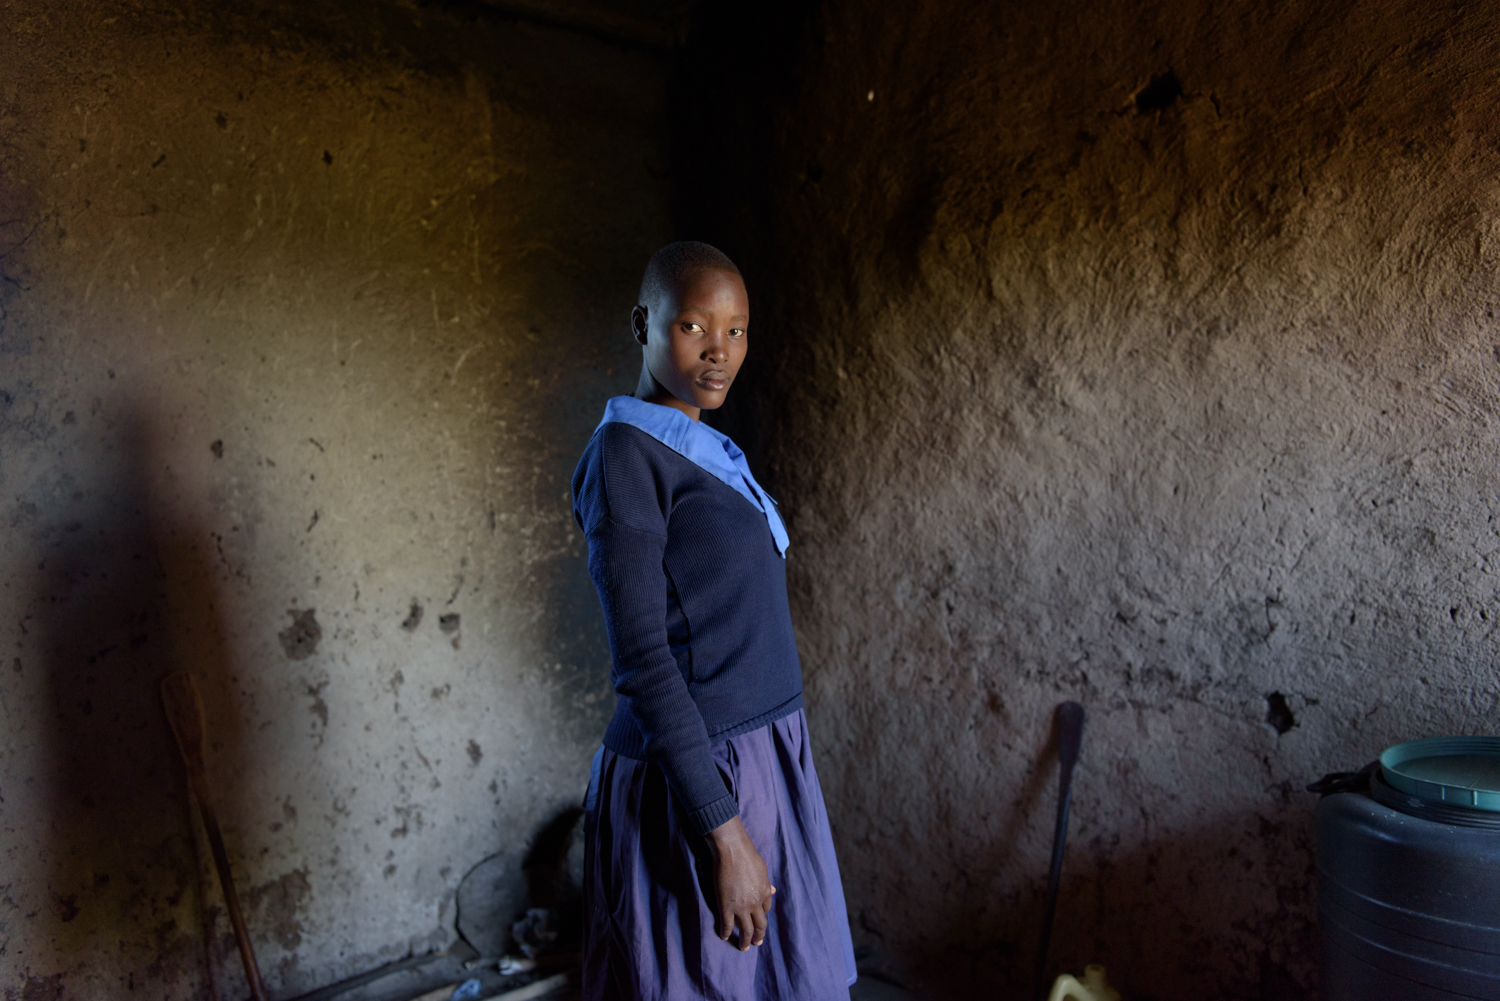 D.R., 16, studies at the Ngukumahando Primary School and runs home everyday during lunch break to breastfeed her newborn. D.'s family is supportive and her mother takes care of her child when she is at school.